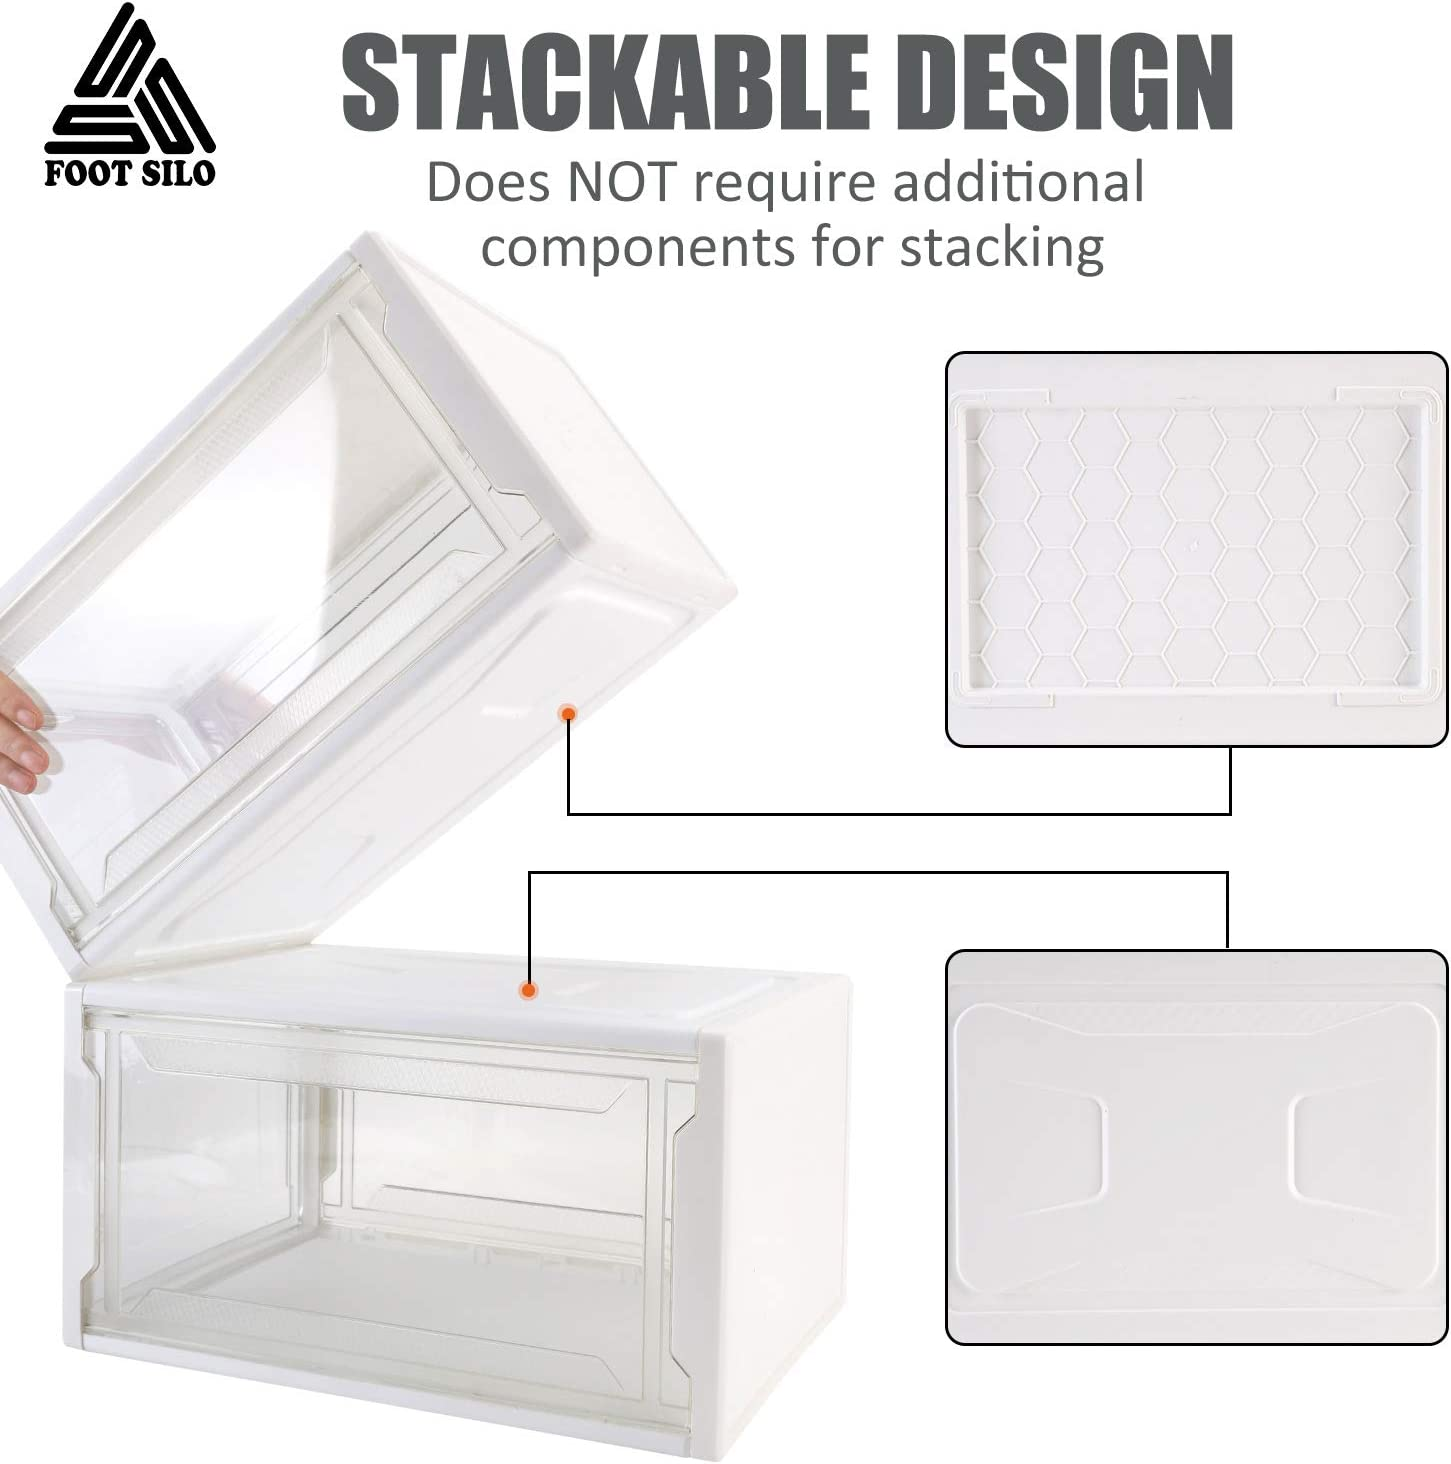 Drop Front Shoe Box Transparent Shoe Display Case for Sneaker Storage Shoe Boxes Clear Plastic Stackable Pack of 3 White